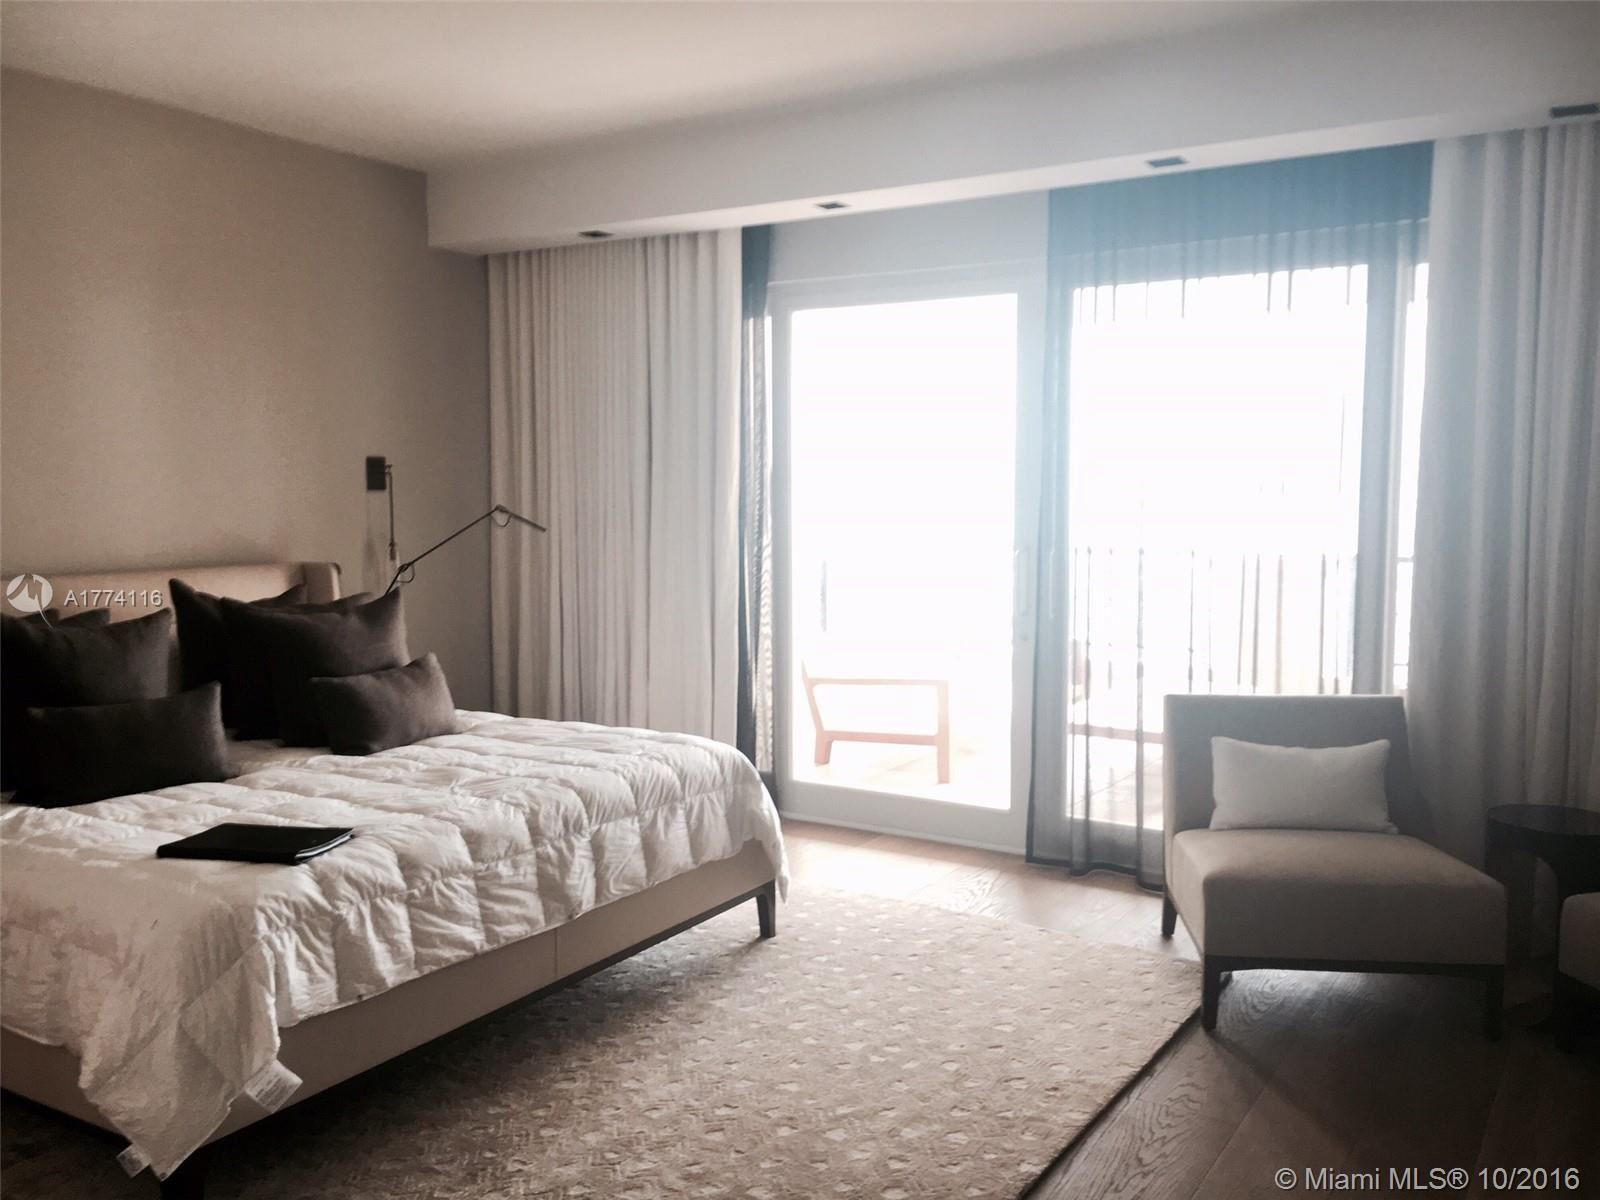 Photo of 4943 FISHER ISLAND DR #4943, Fisher Island, FL 33109 (MLS # A1774116)